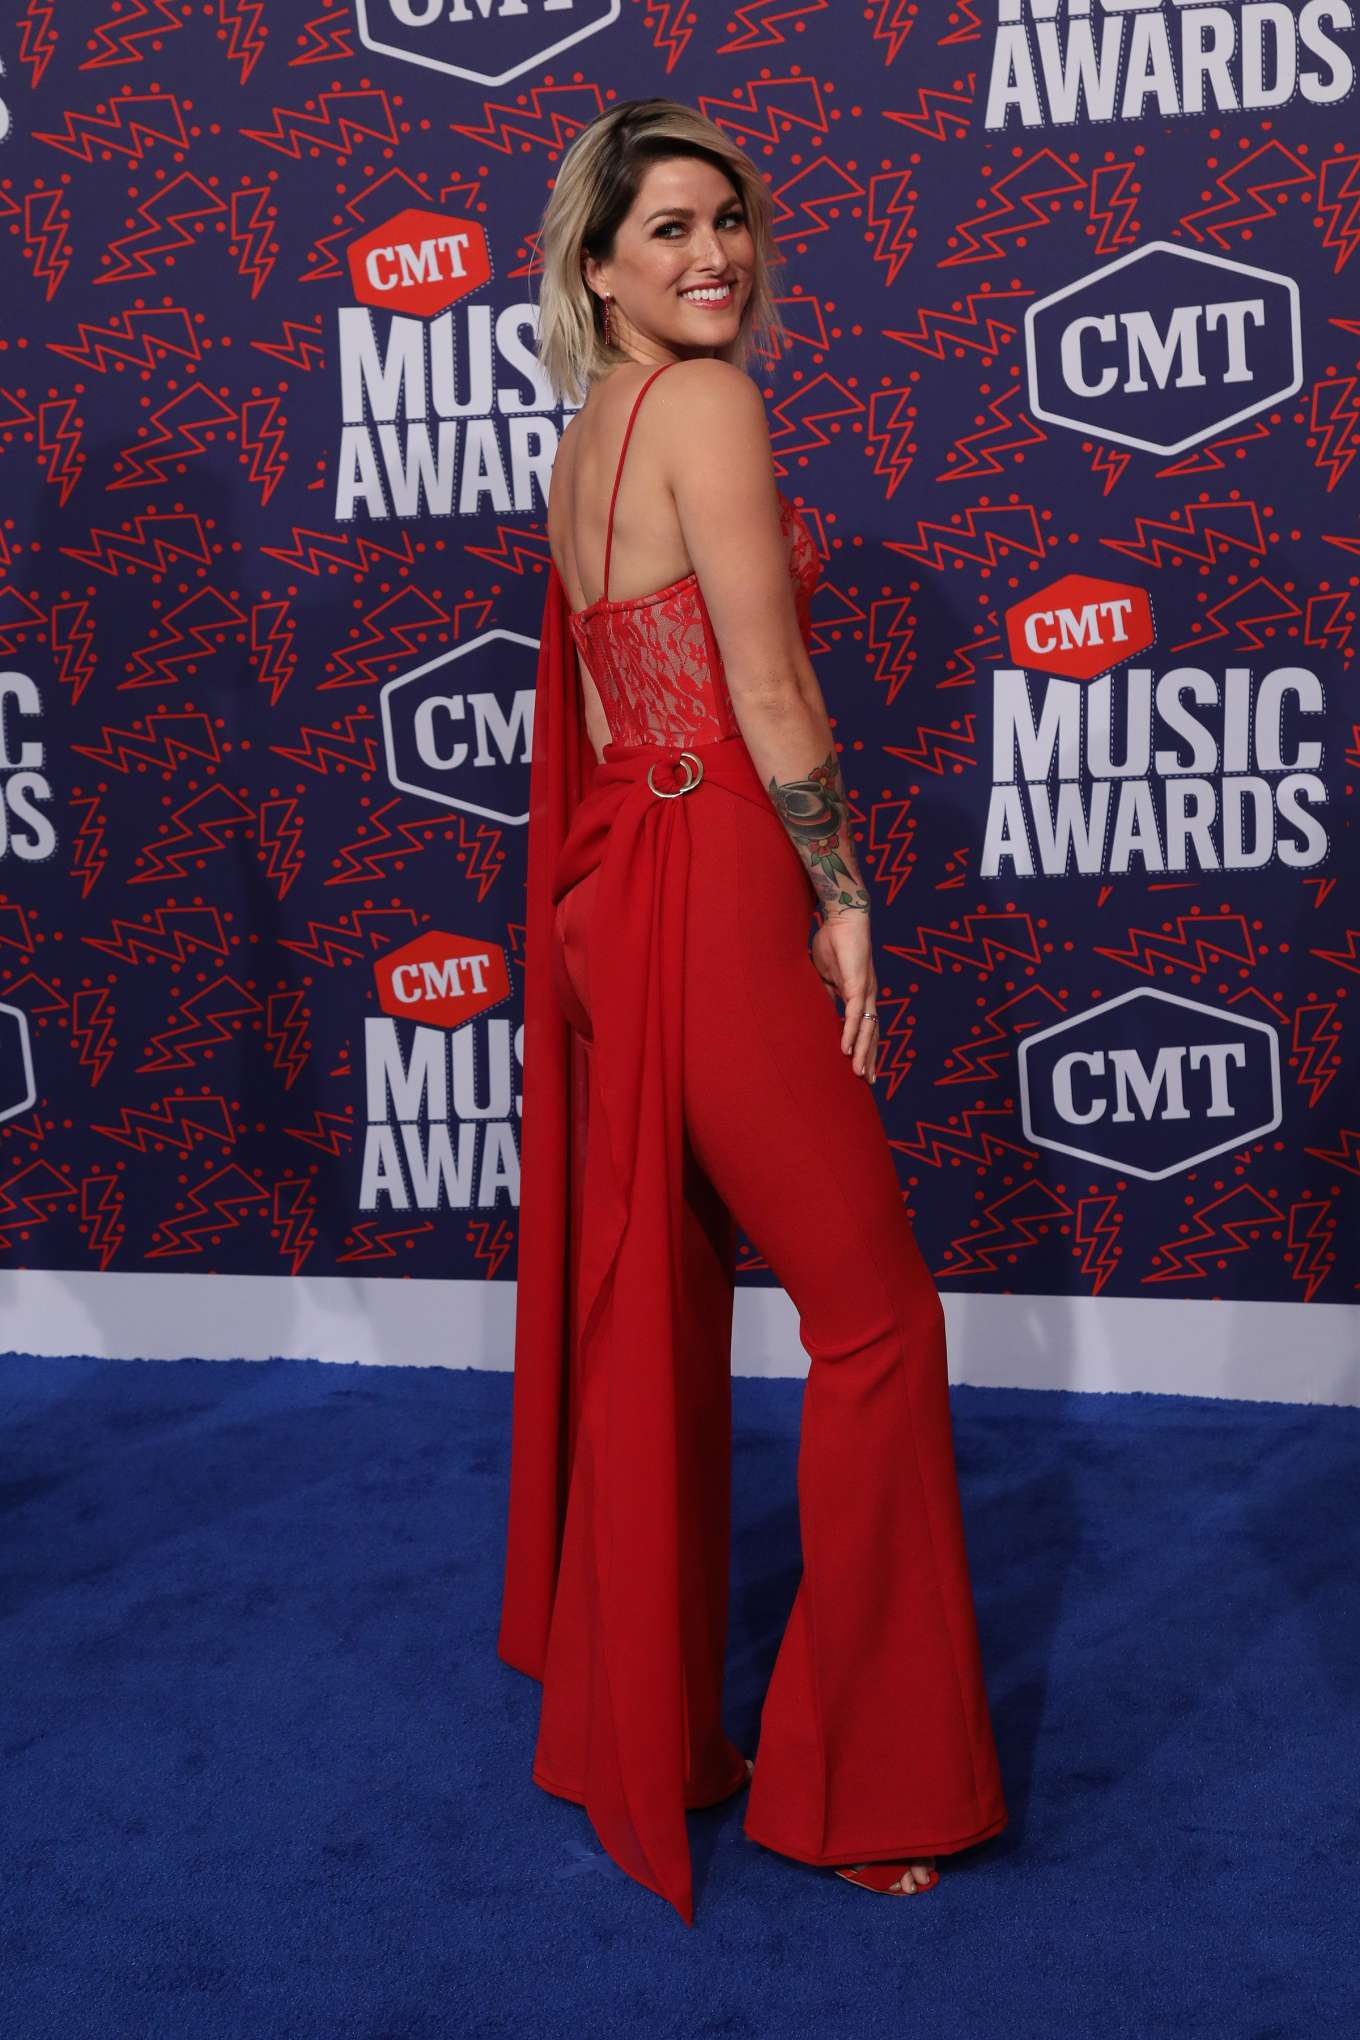 Cassadee Pope 2019 : Cassadee Pope: 2019 CMT Music Awards-30